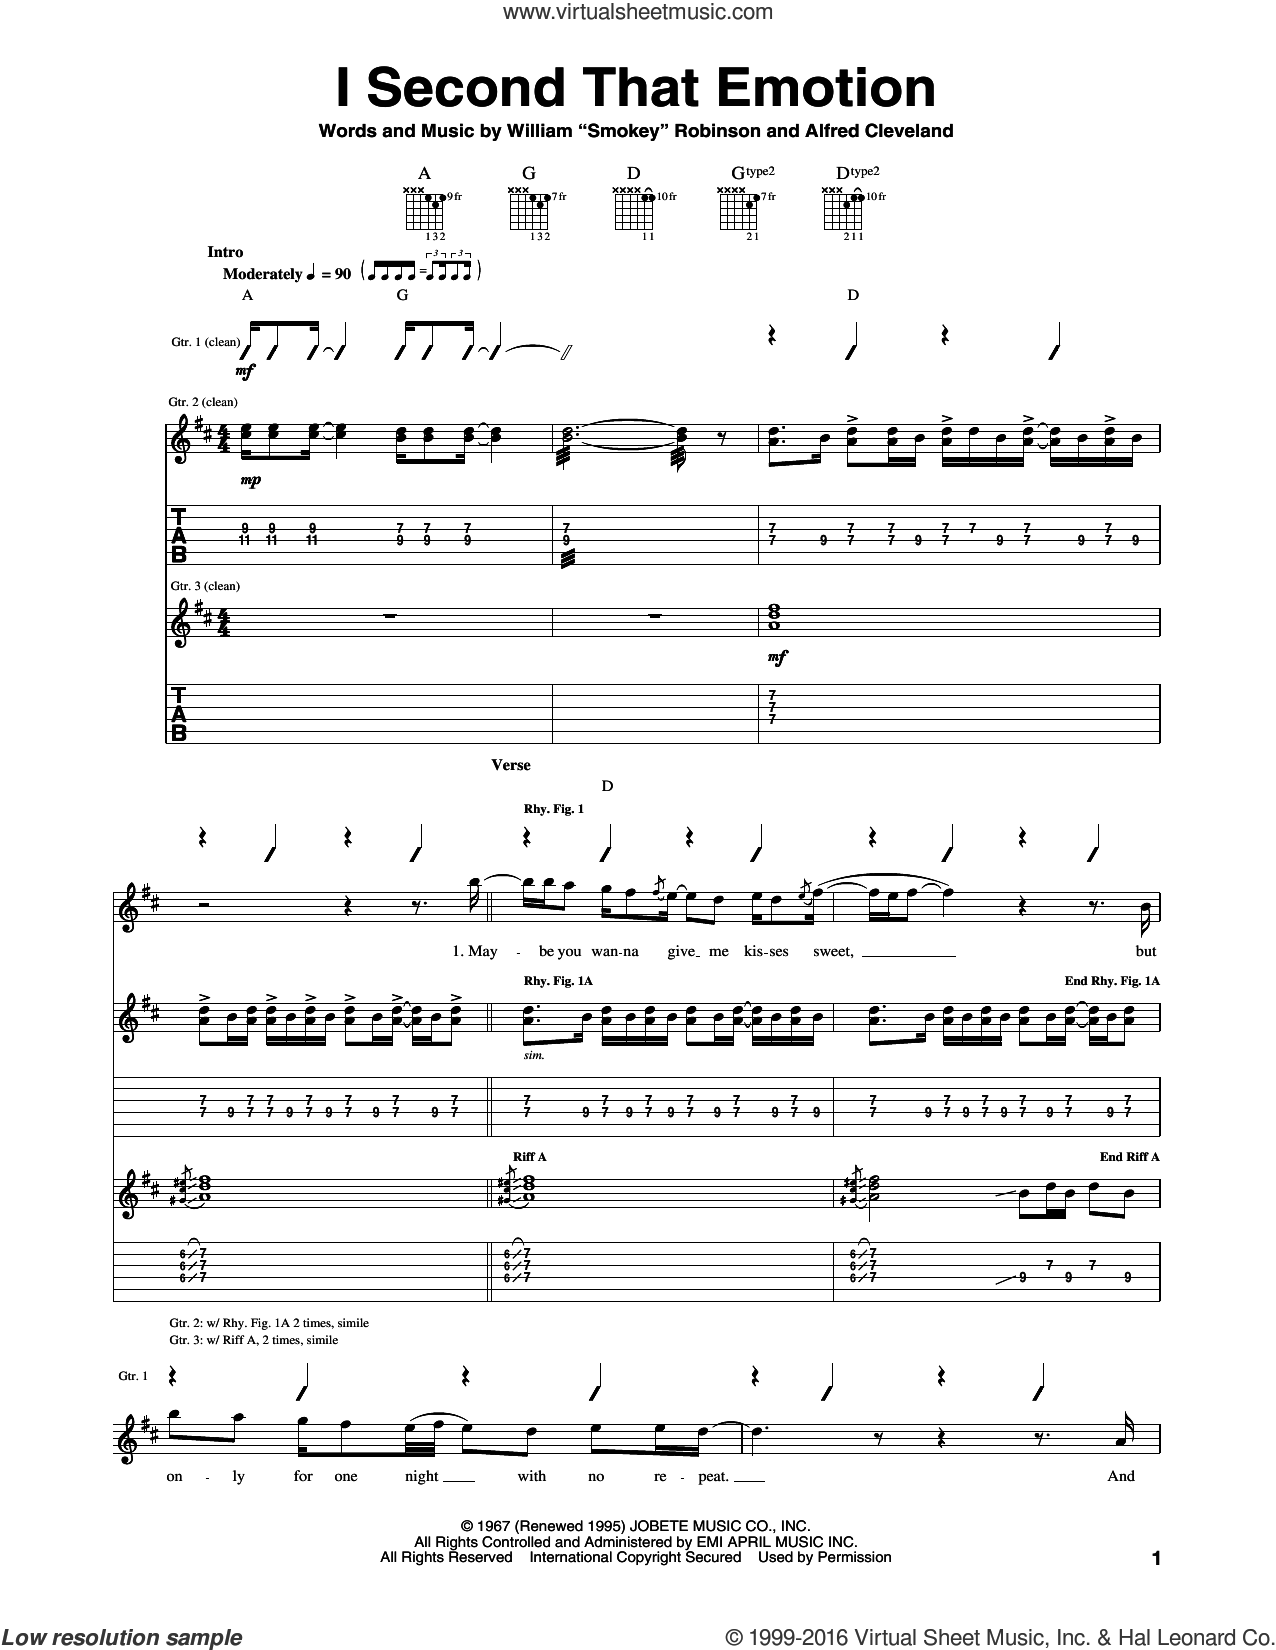 I Second That Emotion sheet music for guitar (tablature) by William 'Smokey' Robinson